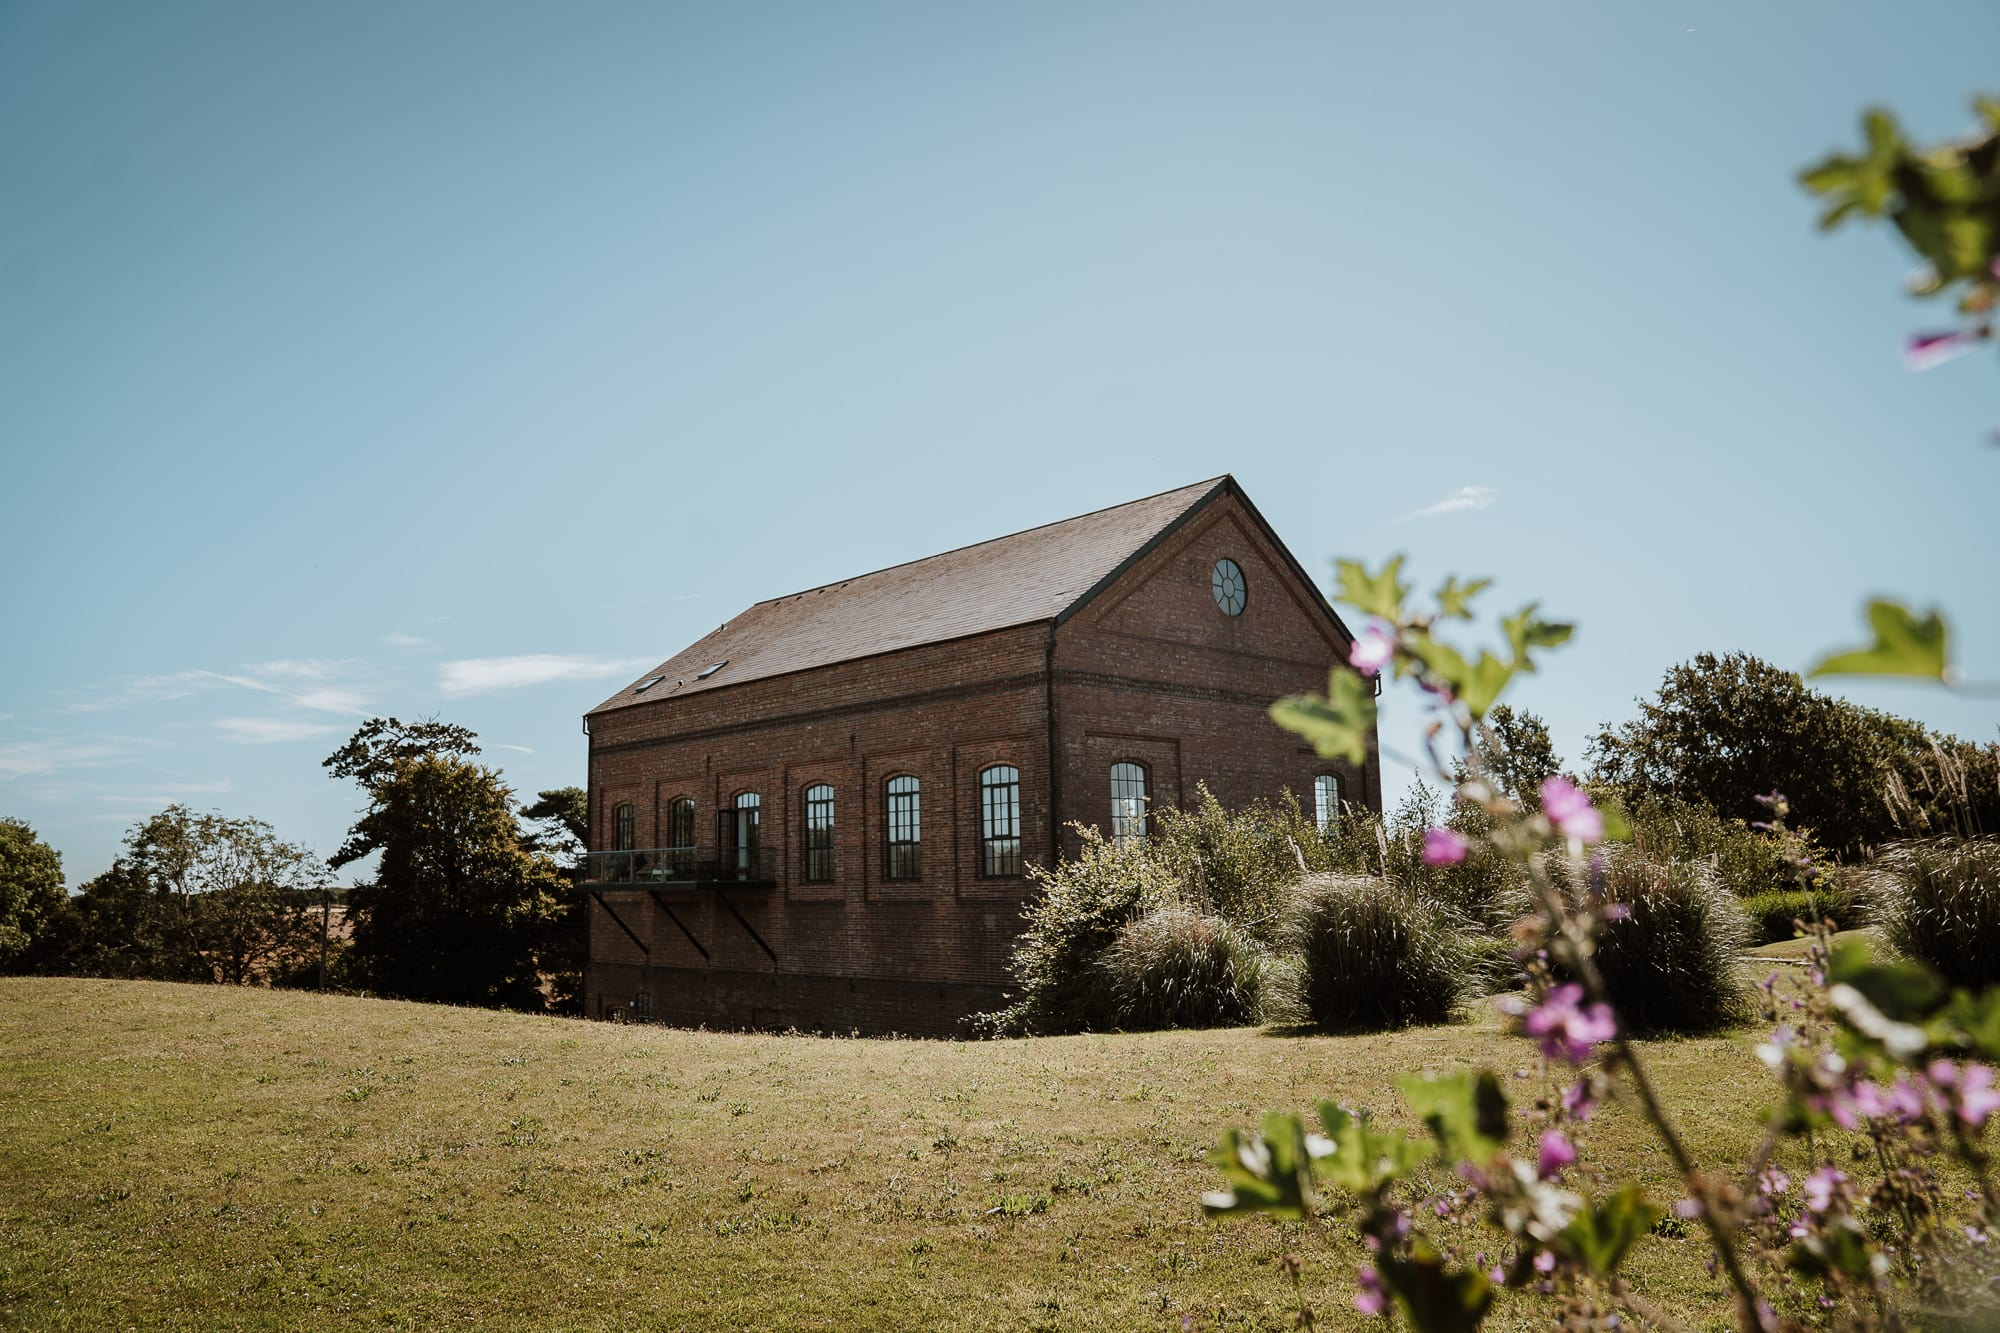 Outside view of the Winding House, a unique Kent Wedding Venue